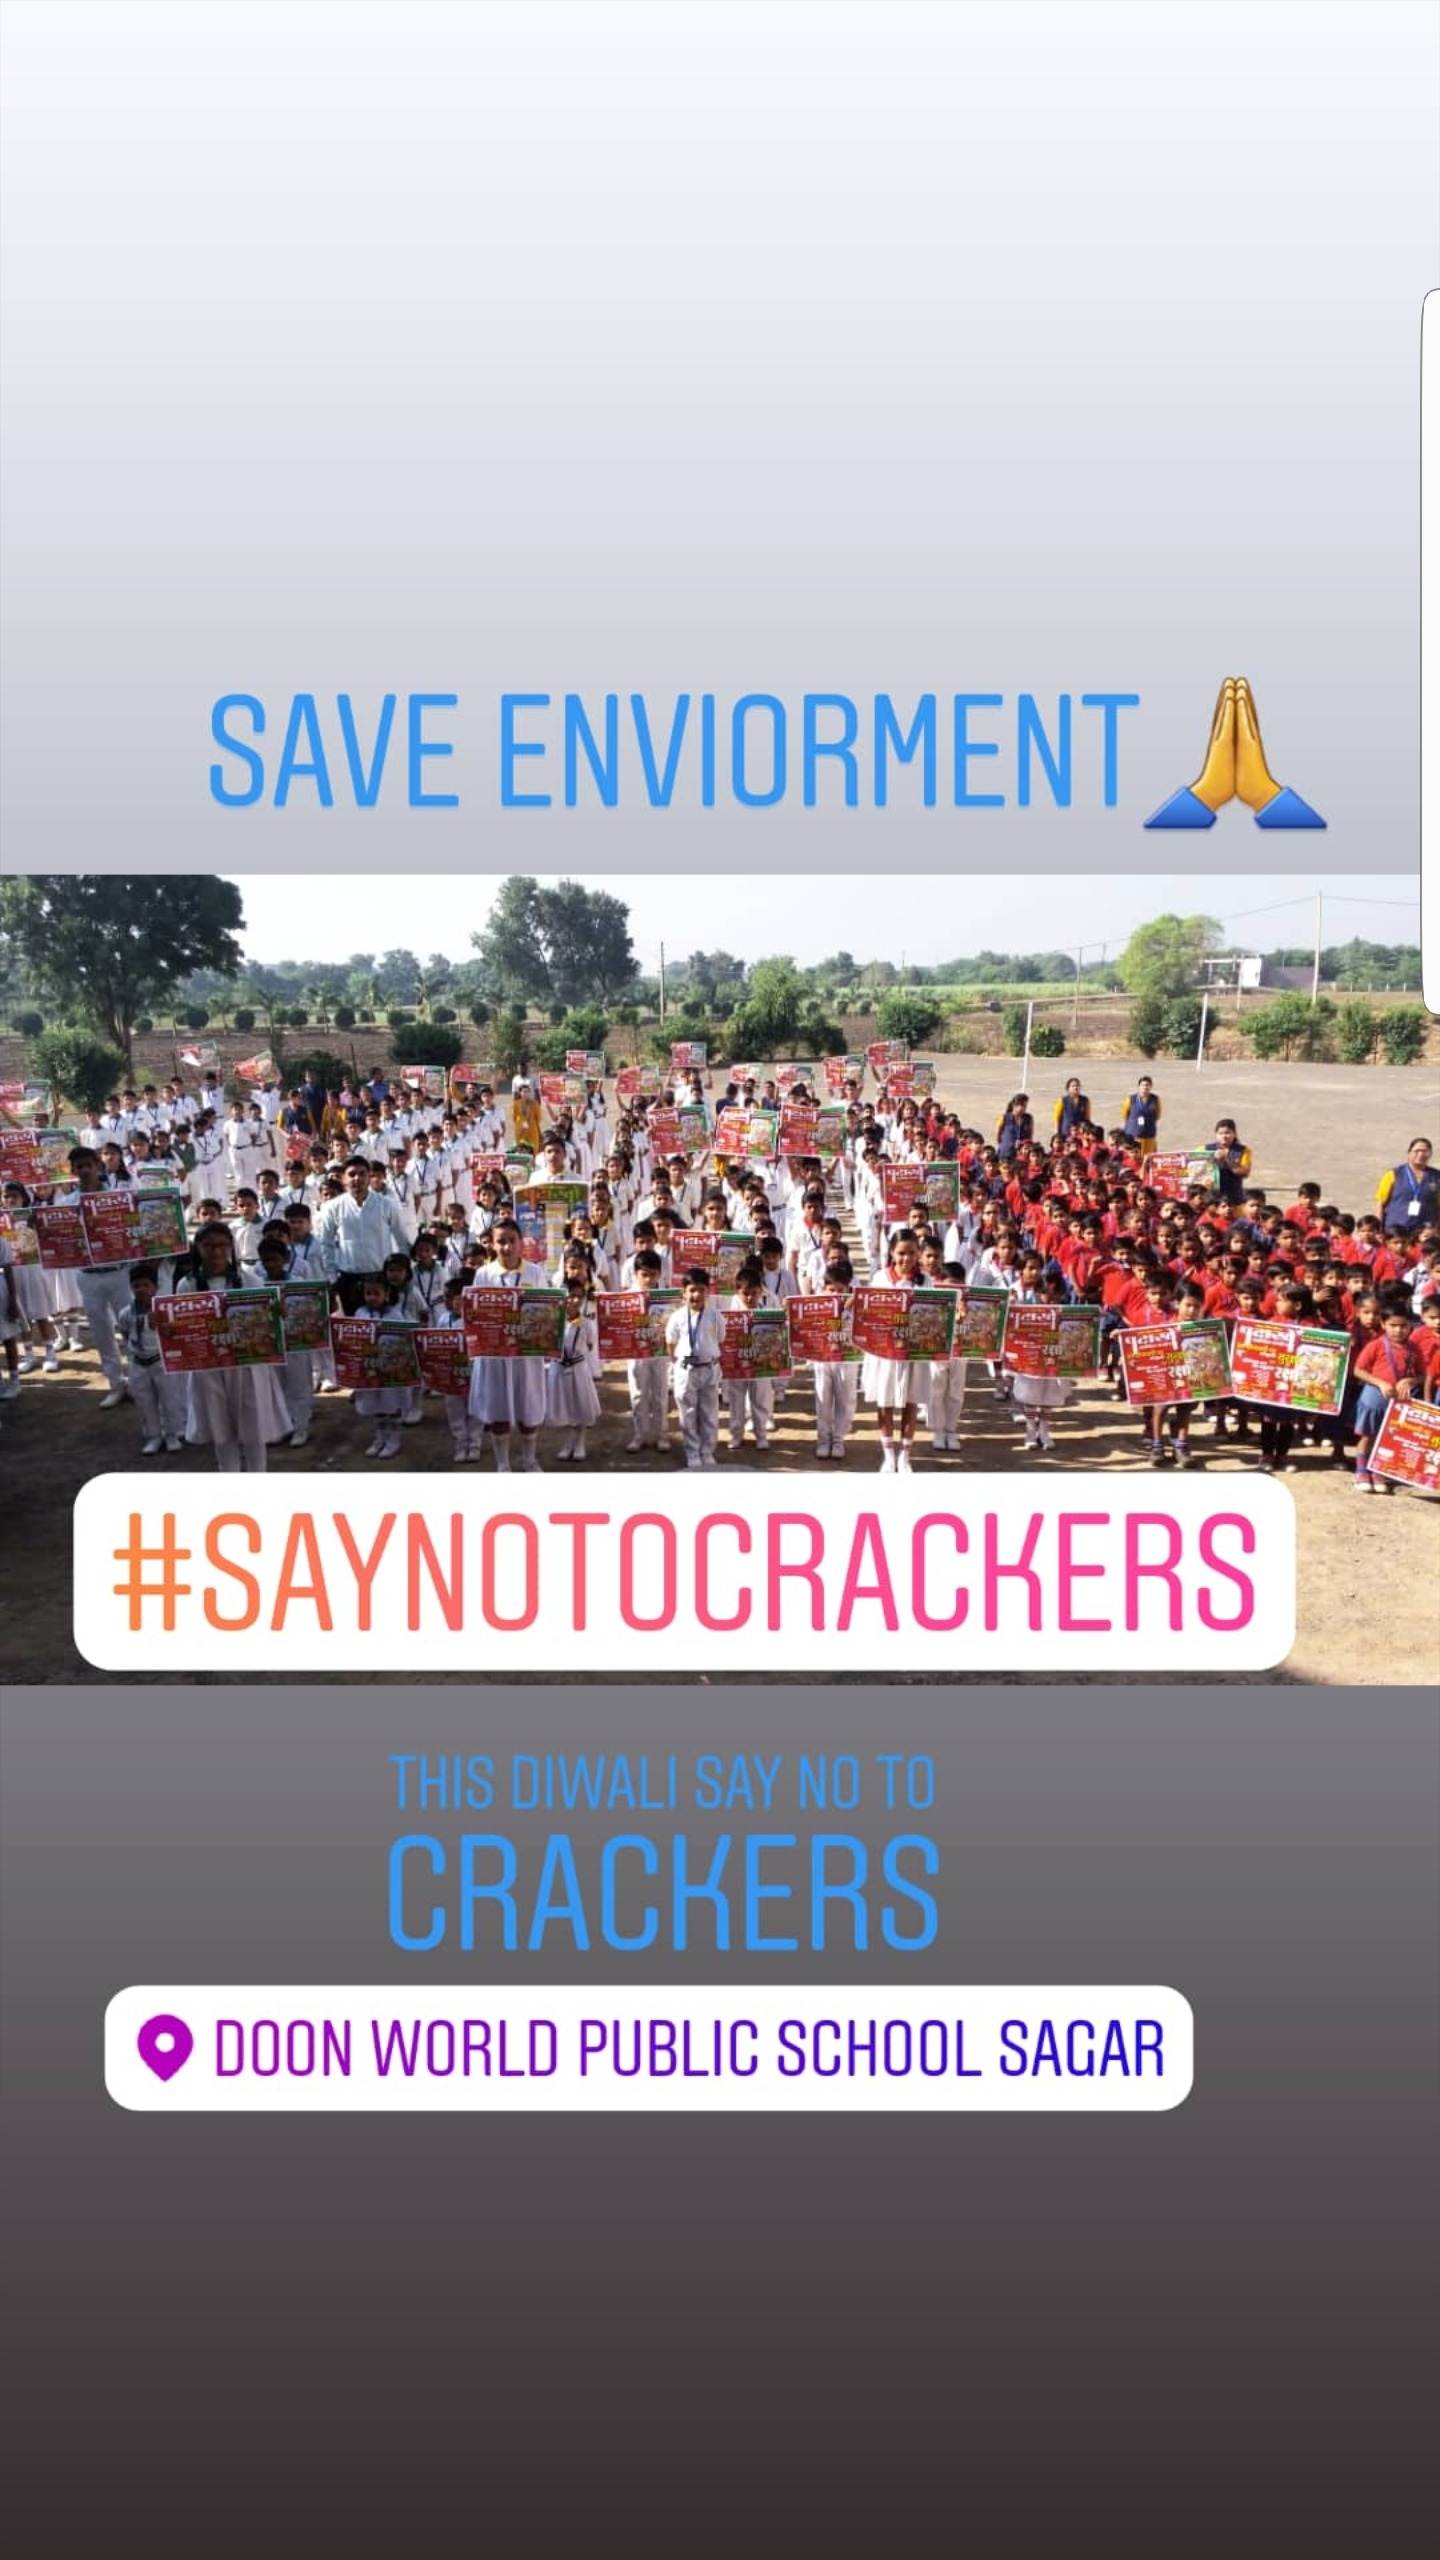 This Diwali say no to crackers